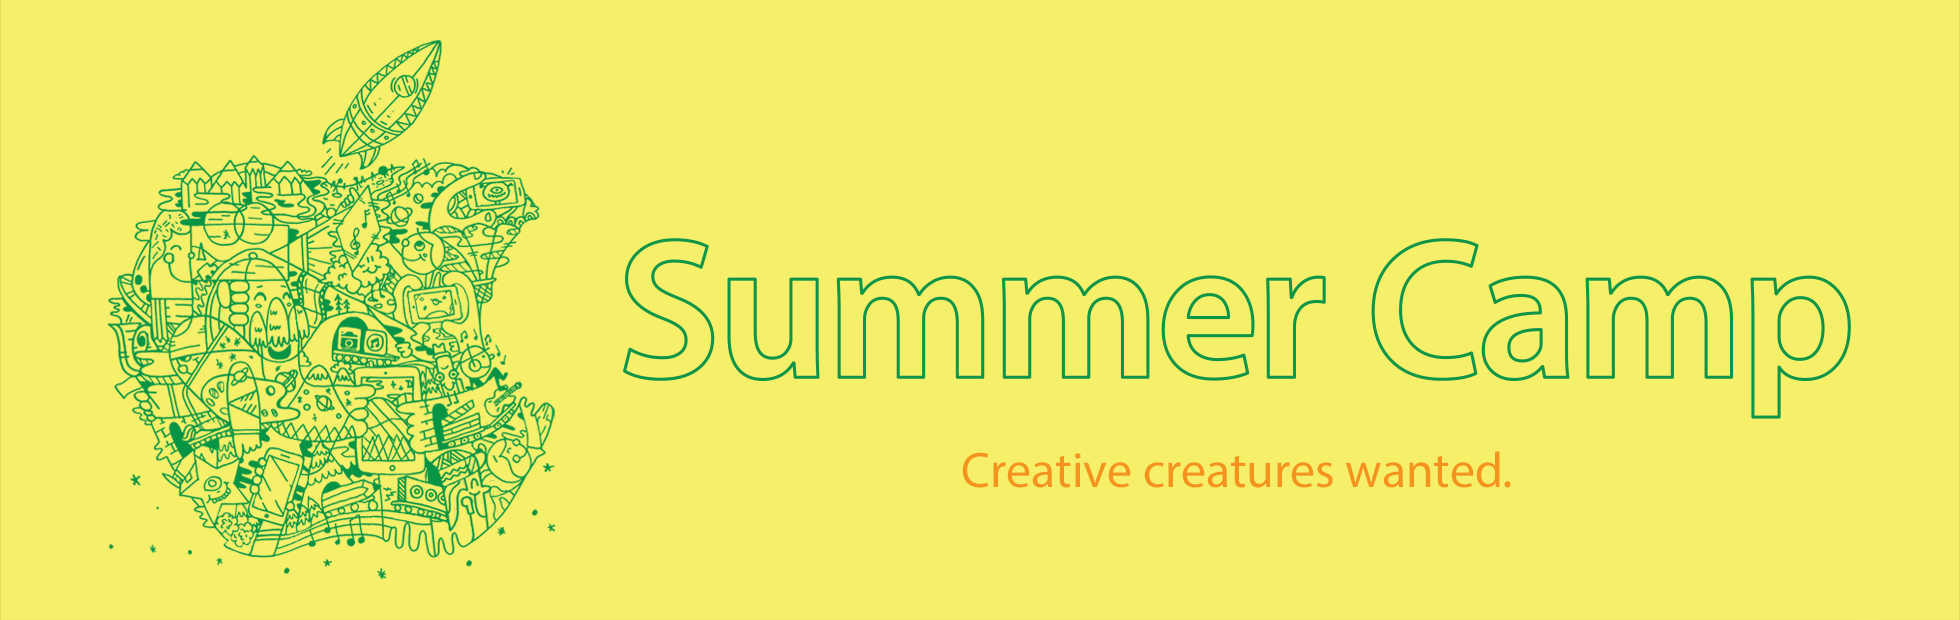  Summer Camp. Creative creatures wanted.